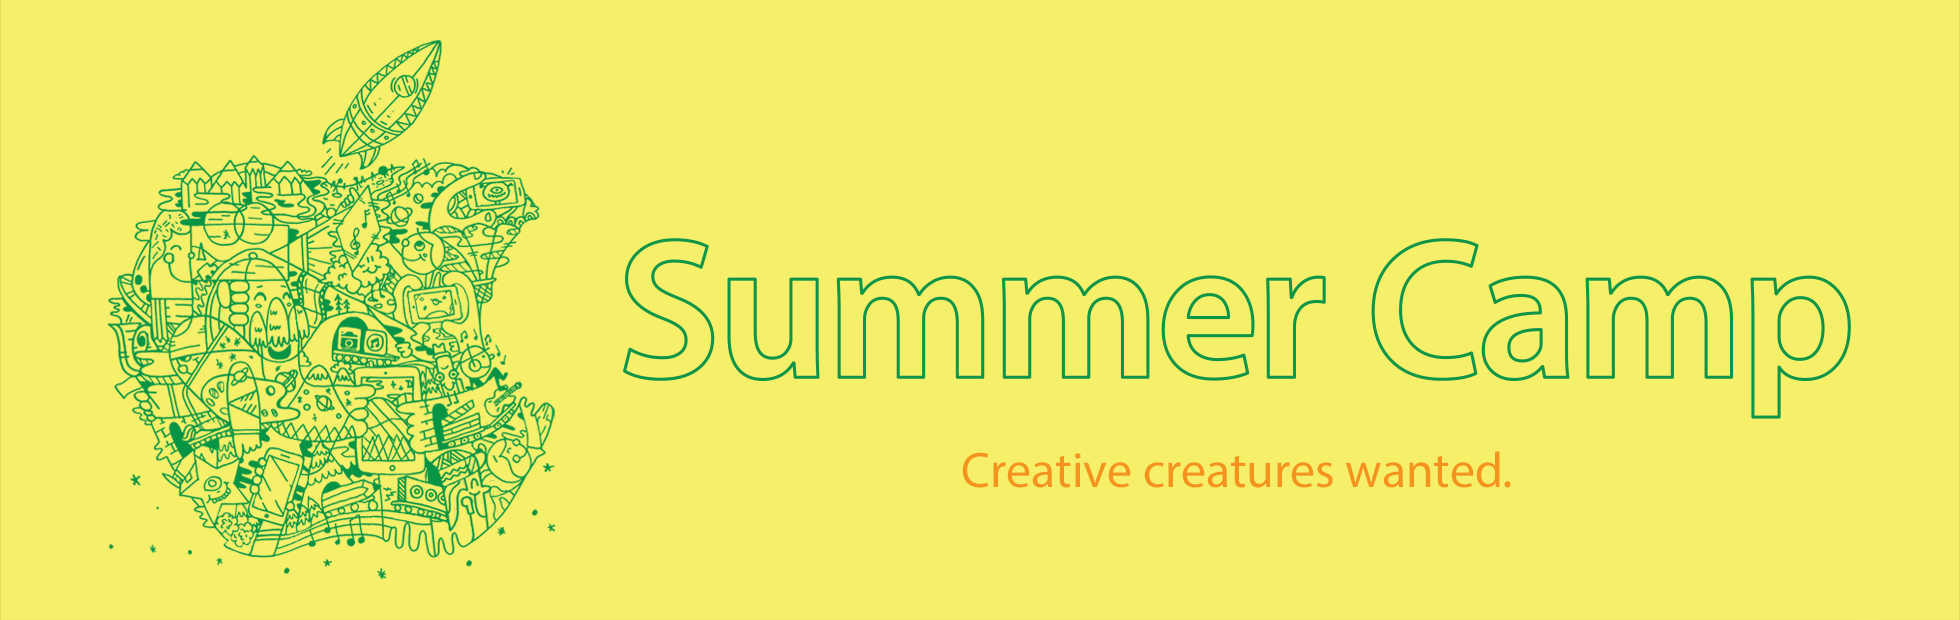  Summer Camp. Creative creatures wanted.